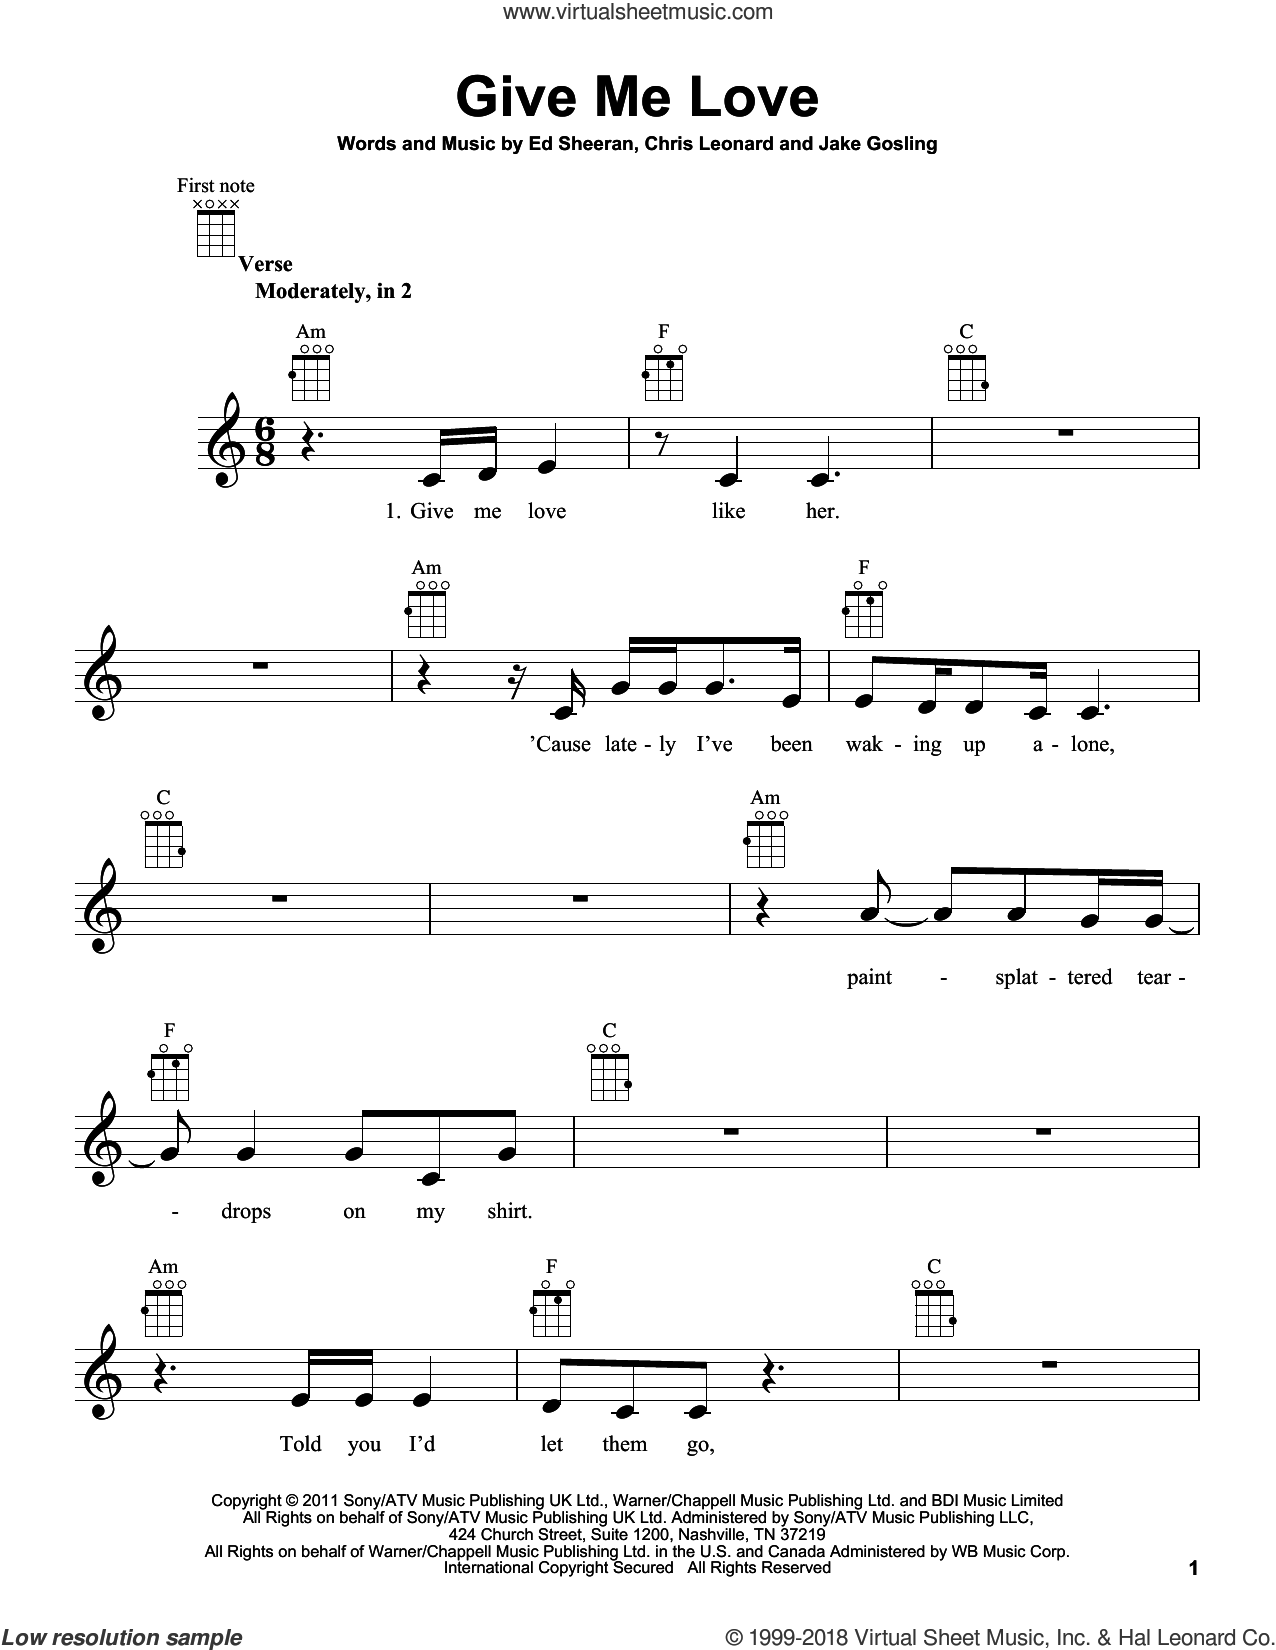 Give Me Love sheet music for ukulele by Ed Sheeran, Chris Leonard and Jake Gosling, intermediate skill level